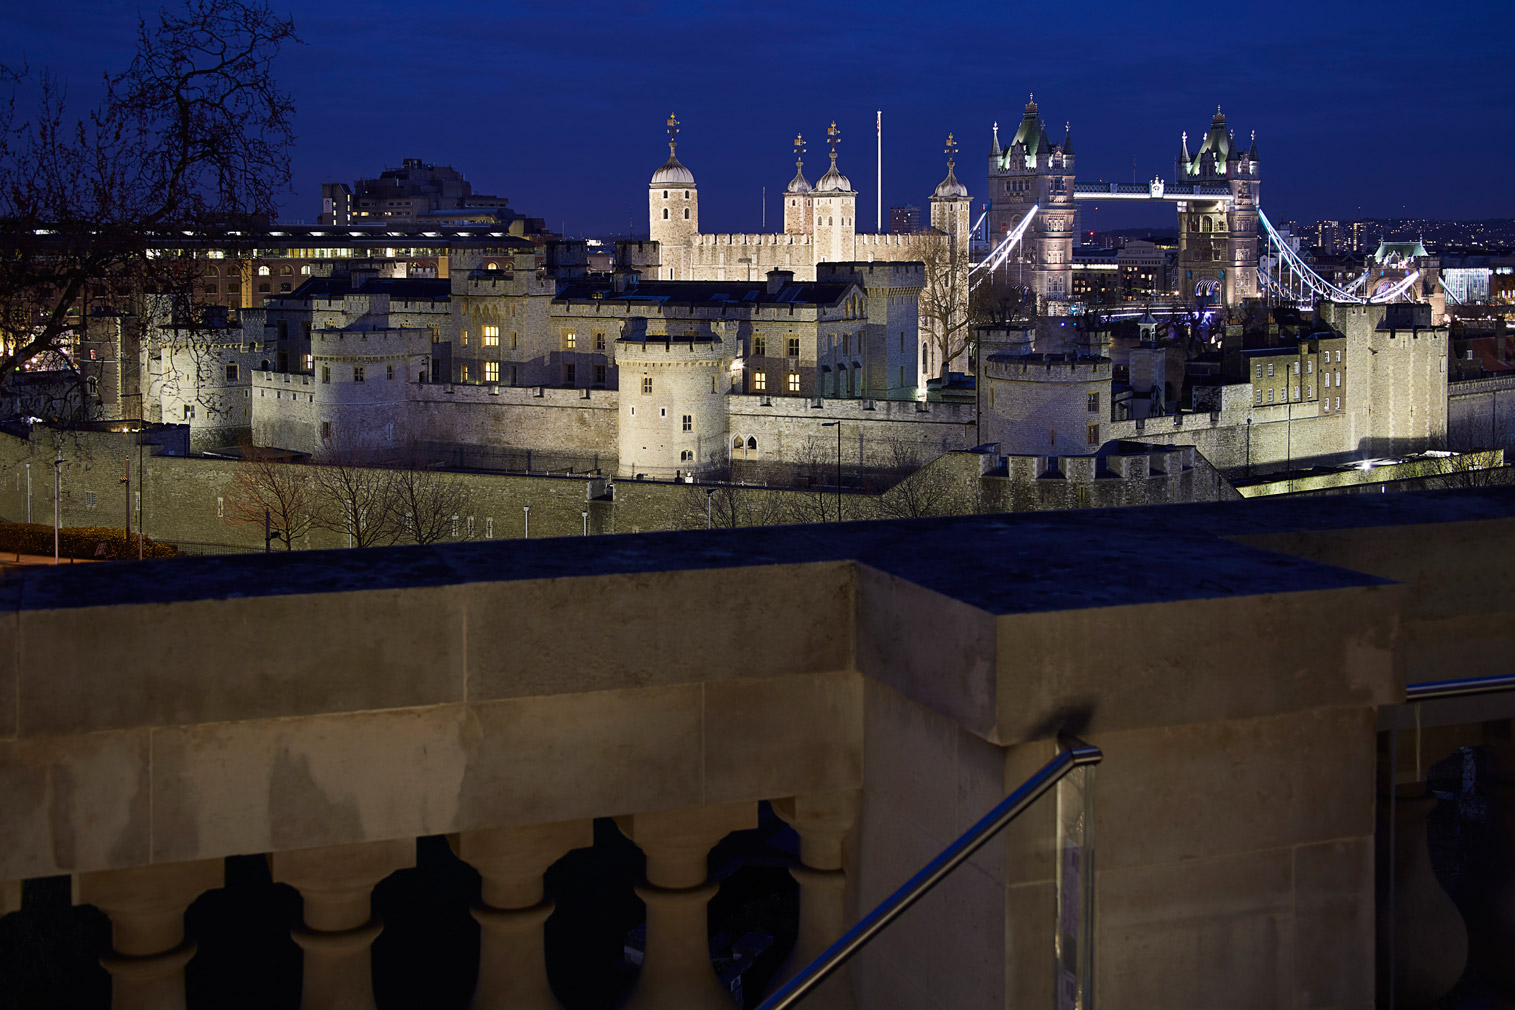 Views of the Tower of London and Tower Bridge